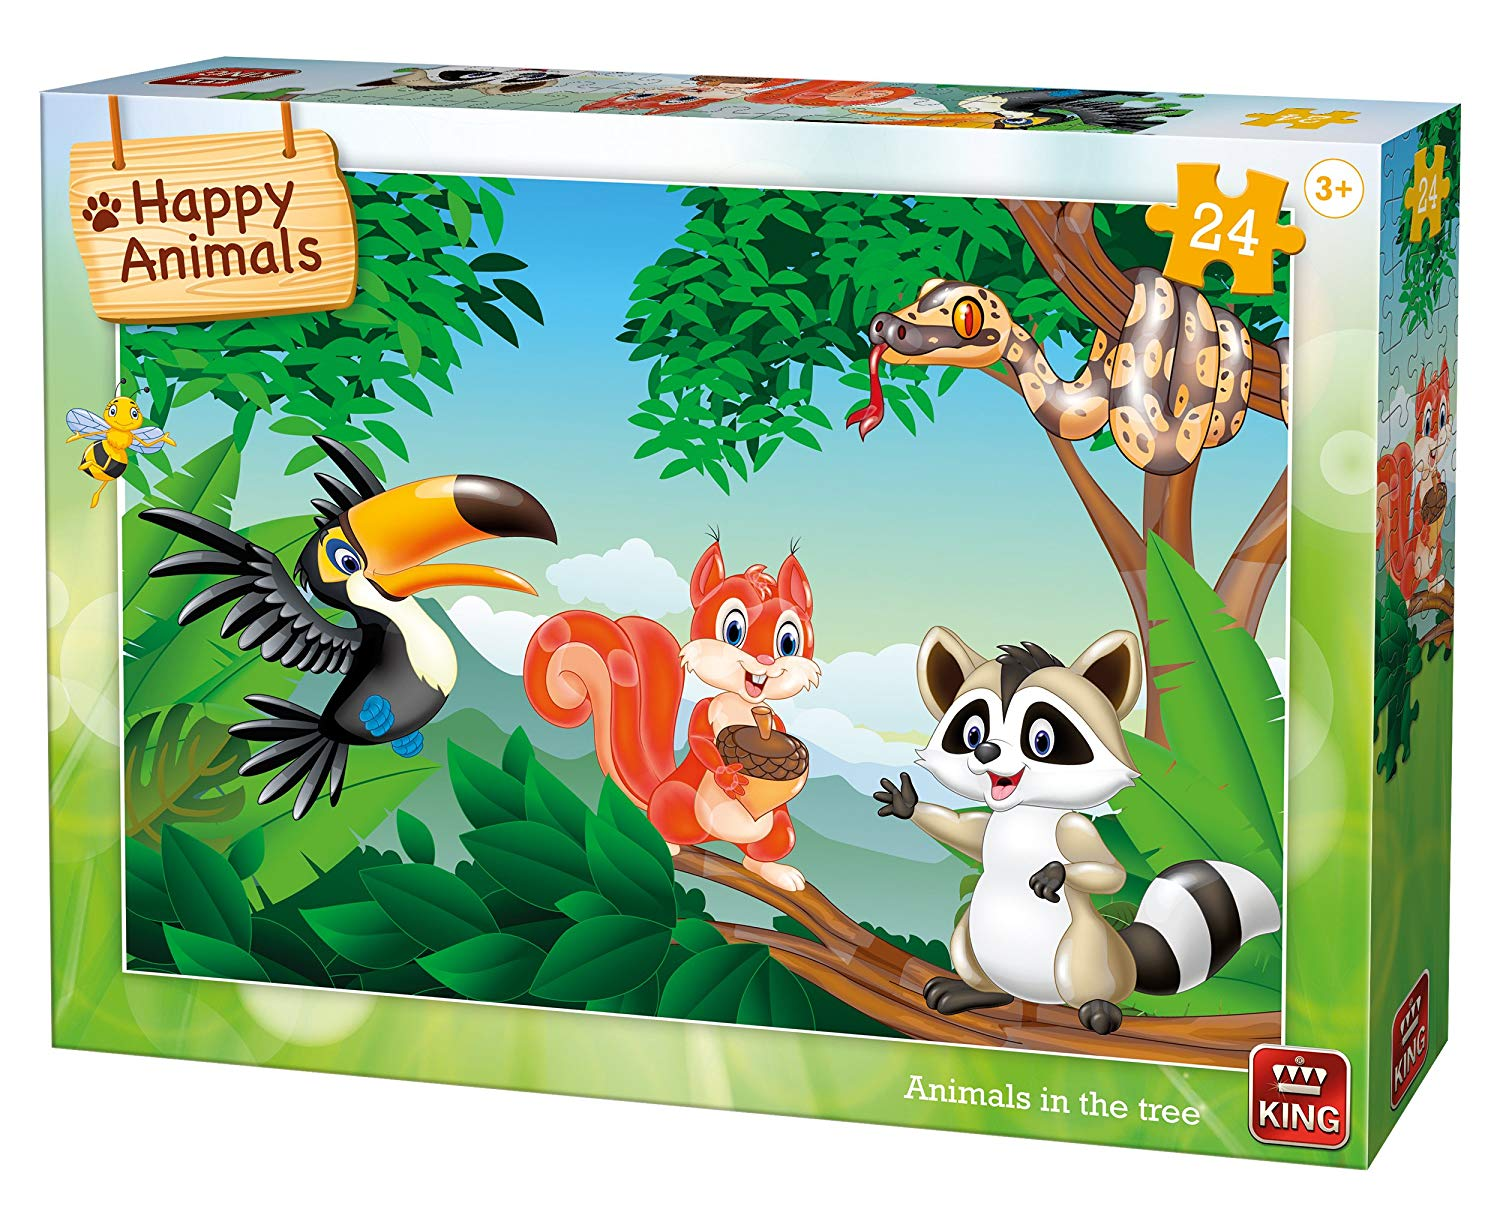 king-international-animals-in-the-tree-24-teile-puzzle-king-puzzle-05783